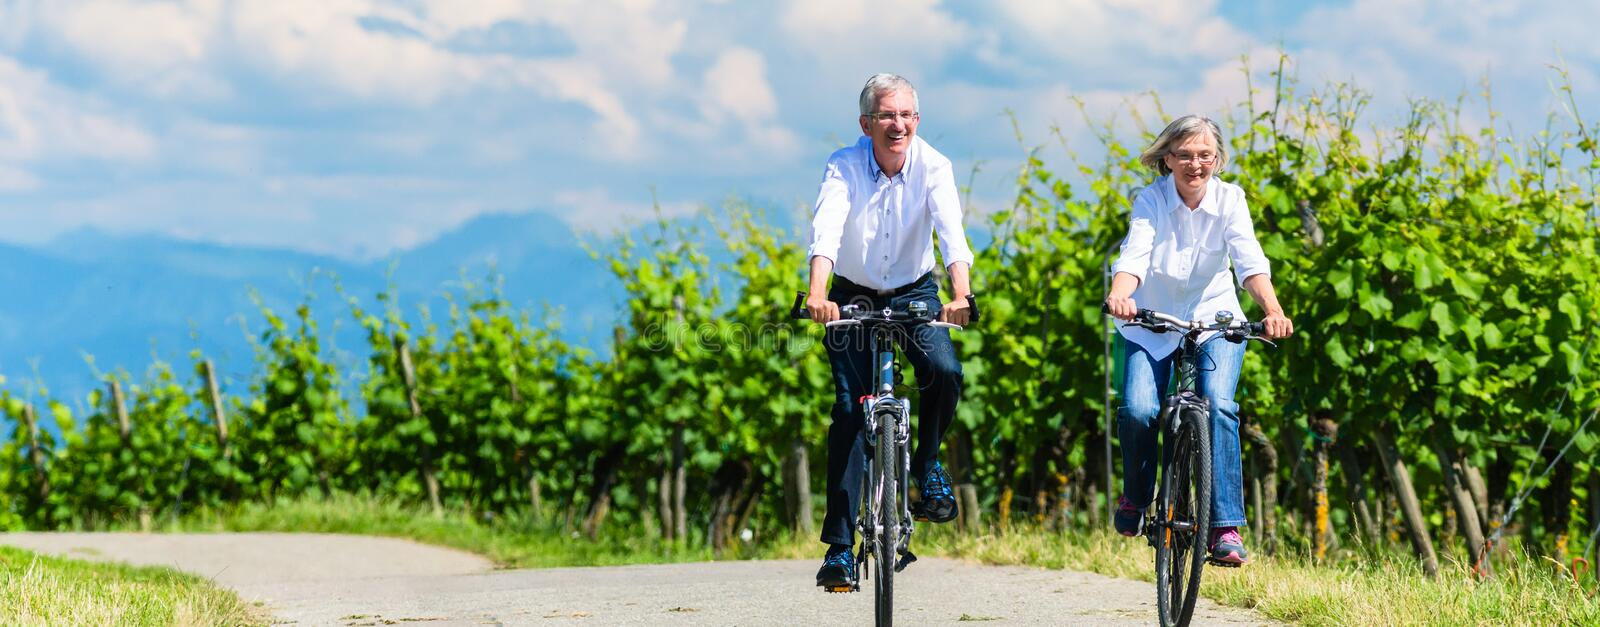 Seniors riding bicycle in vineyard together. Panorama picture